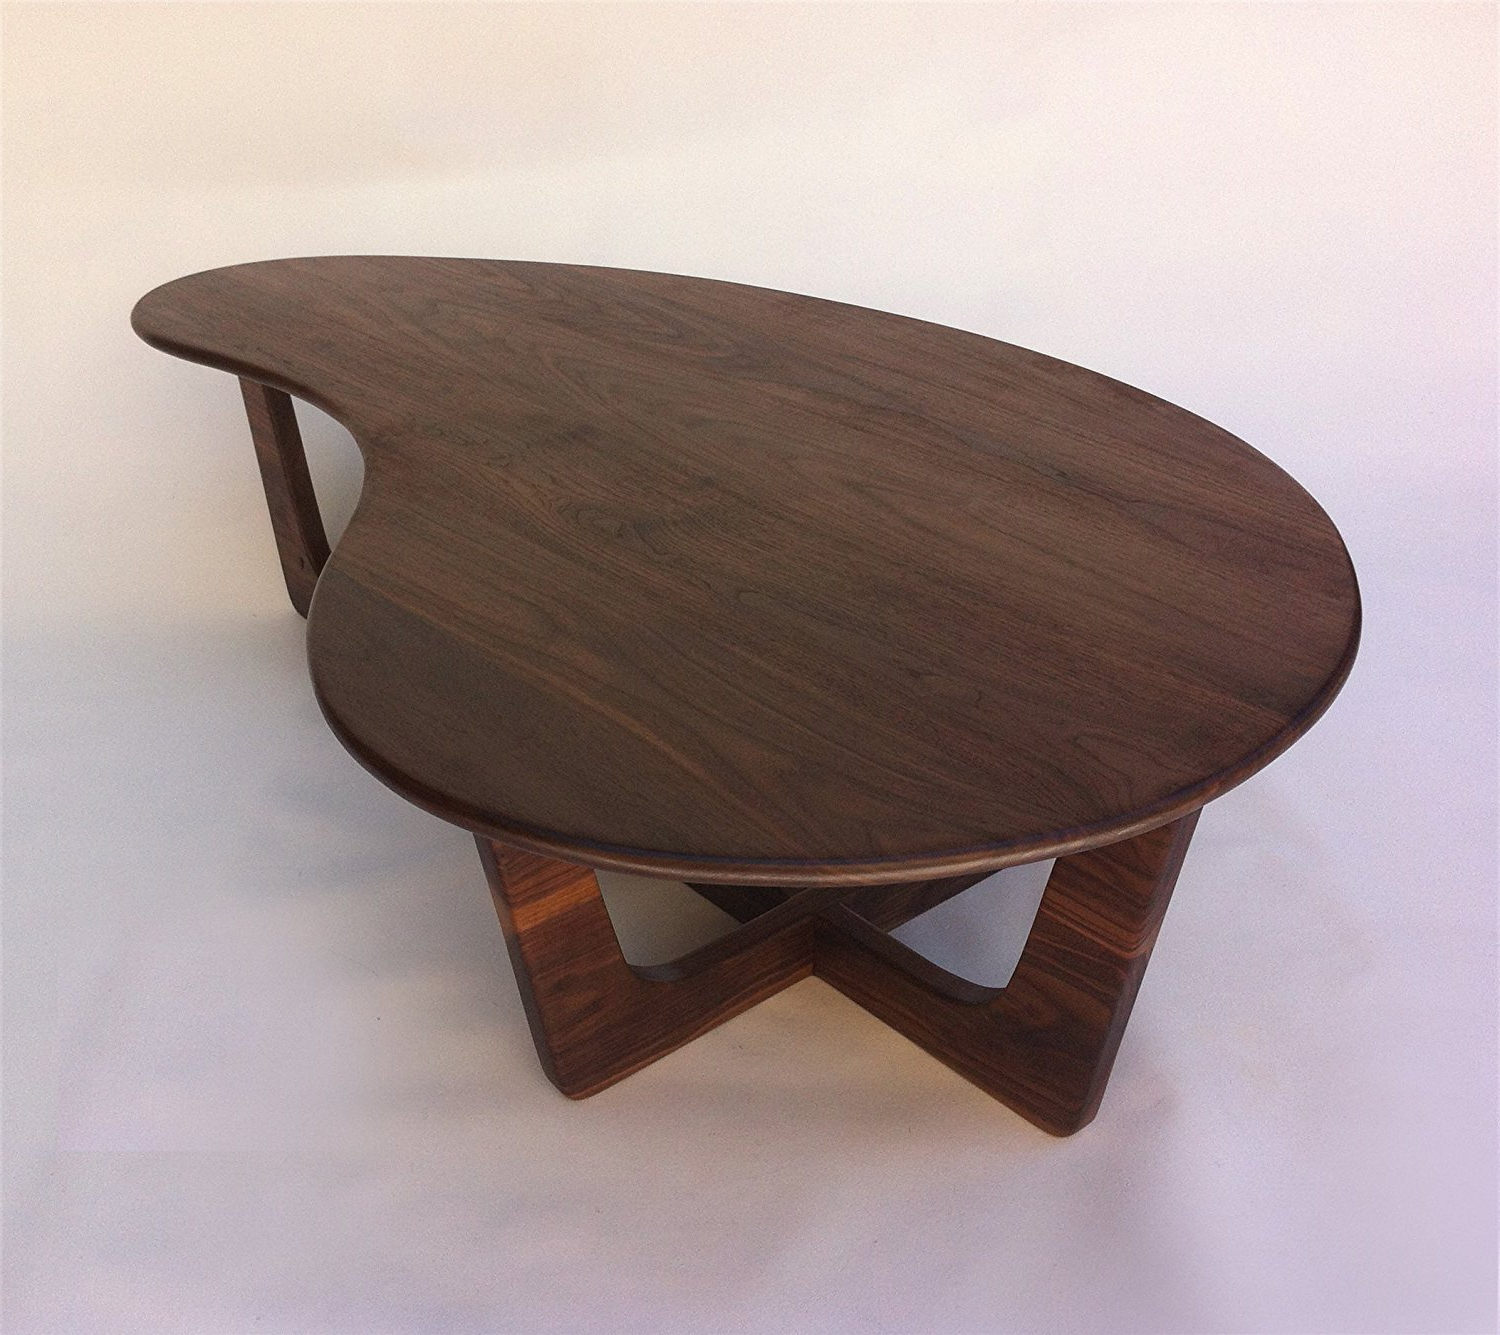 Newest Furniture: Alluring Kidney Shaped Coffee Table With Futuristic With Jelly Bean Coffee Tables (View 14 of 20)